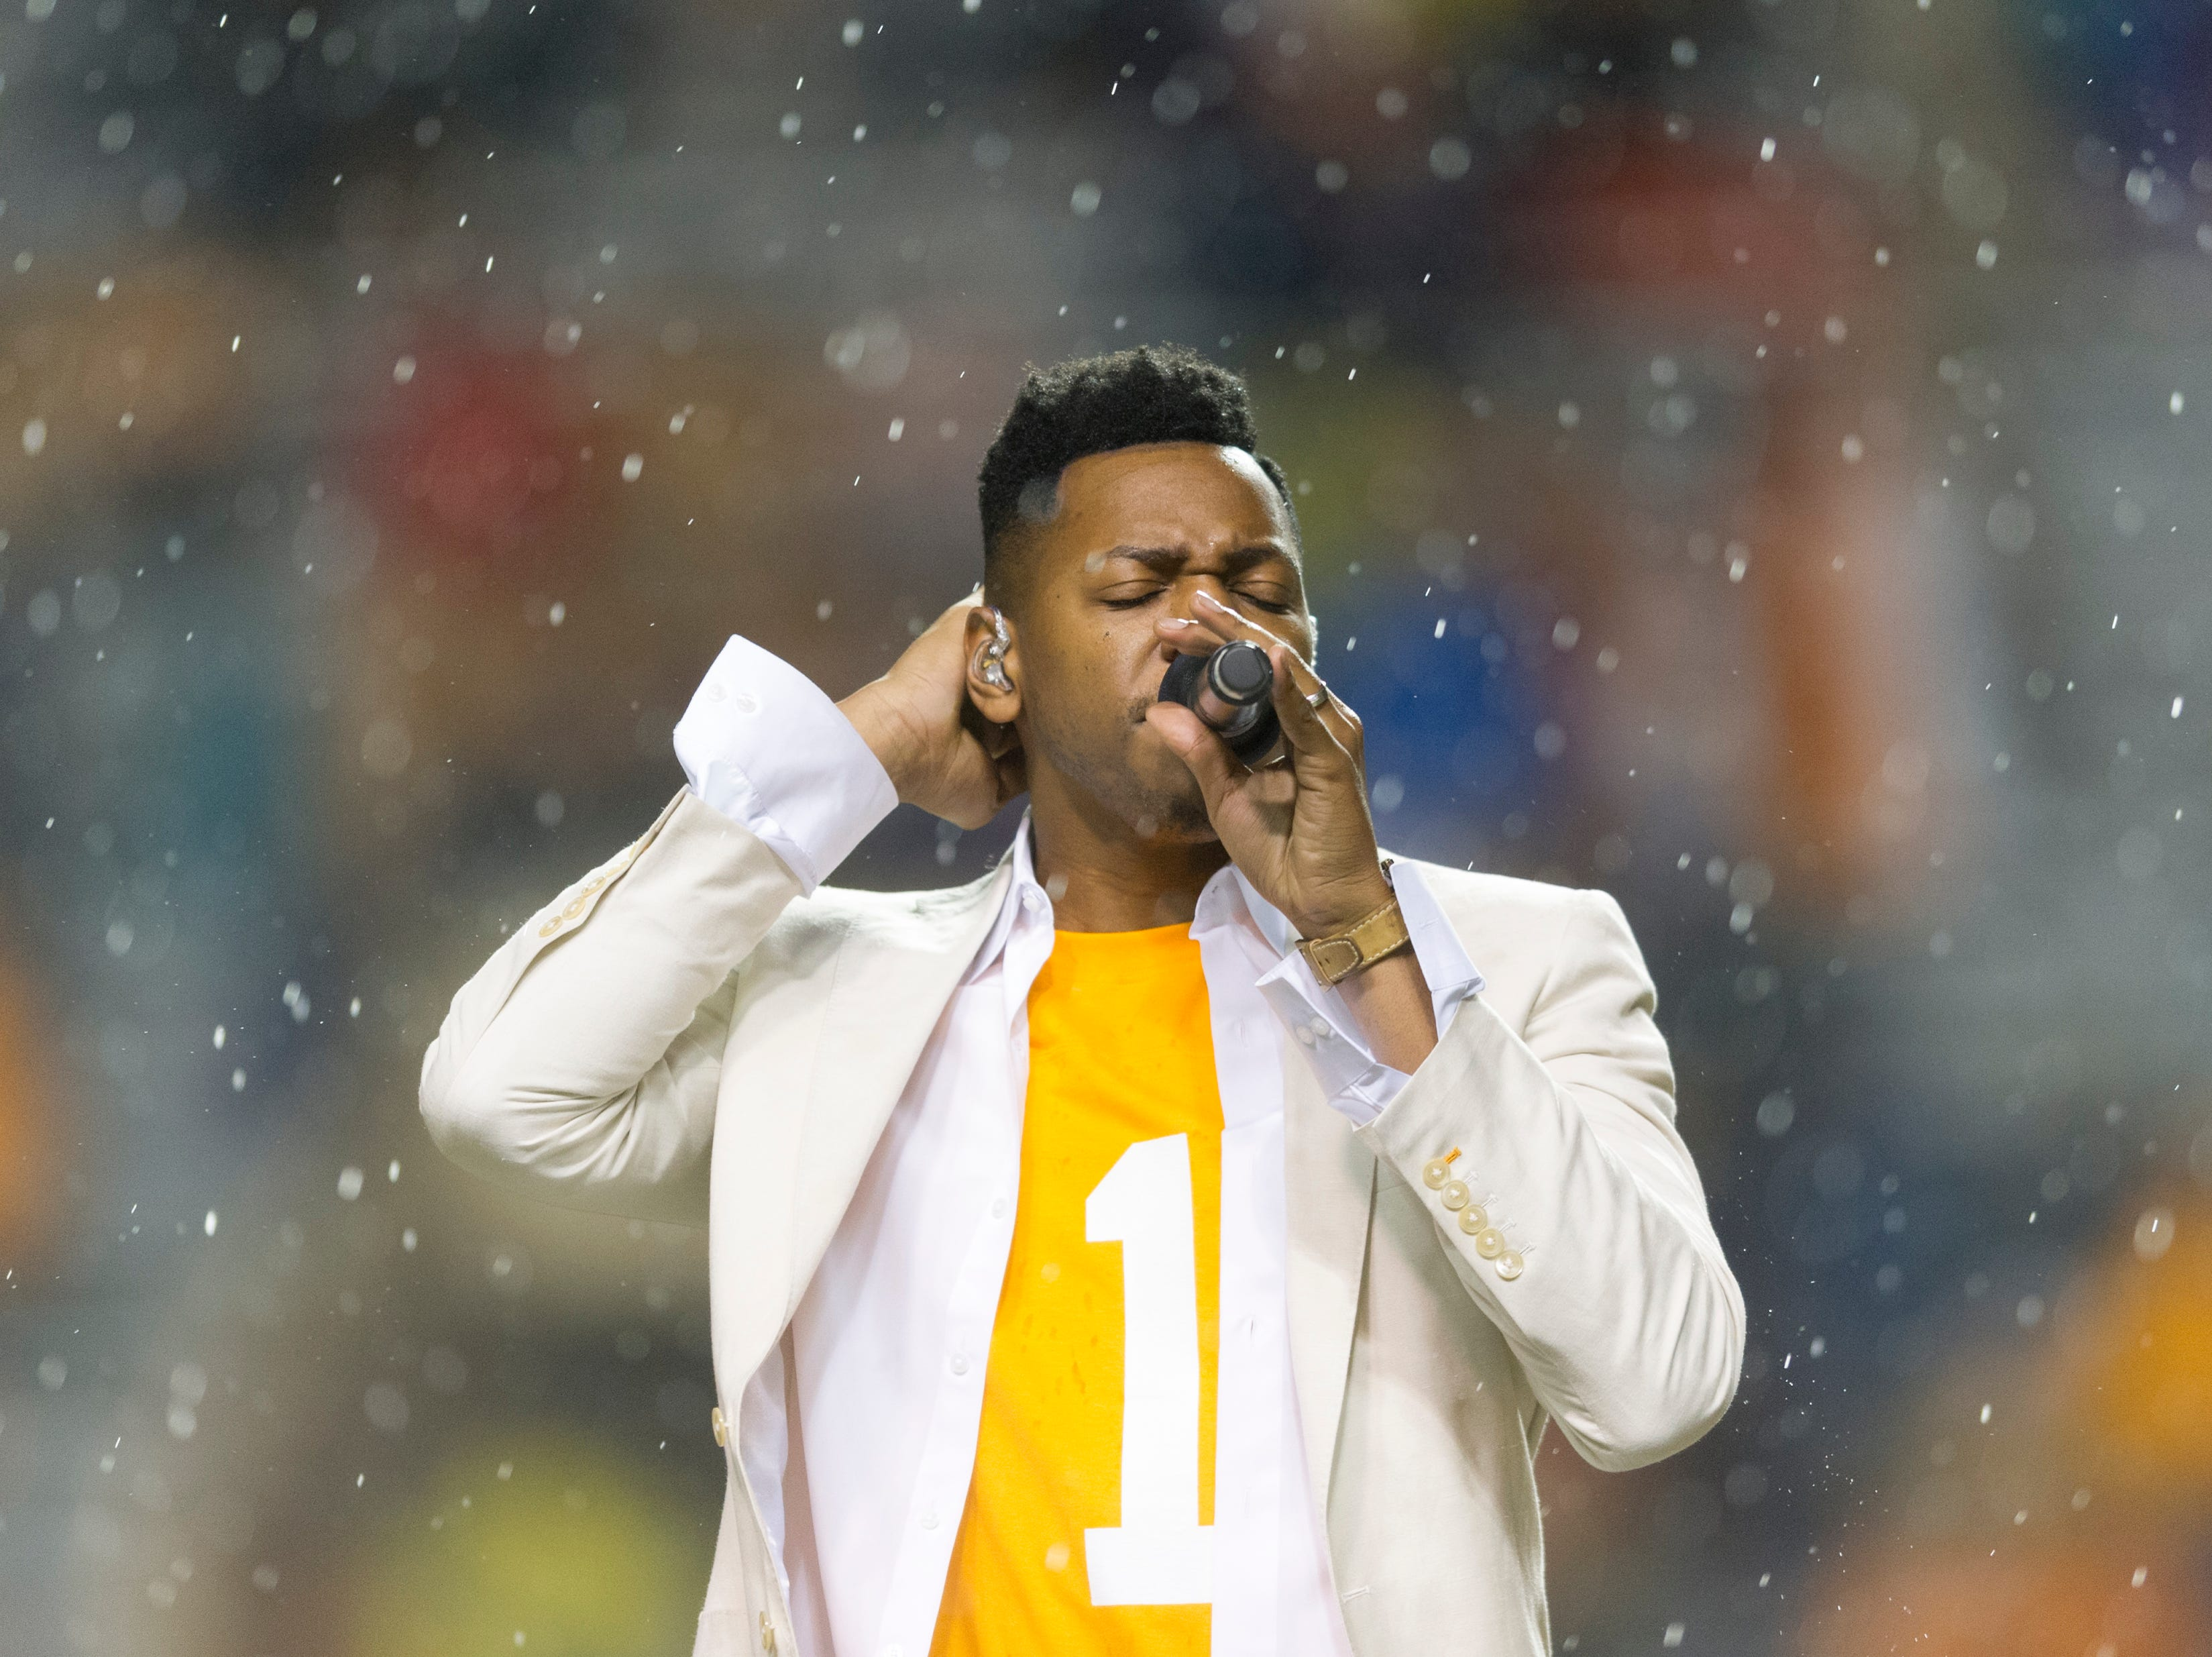 Chris Blue performs during a game between Tennessee and LSU at Neyland Stadium in Knoxville, Tennessee, on Saturday, Nov. 18, 2017.